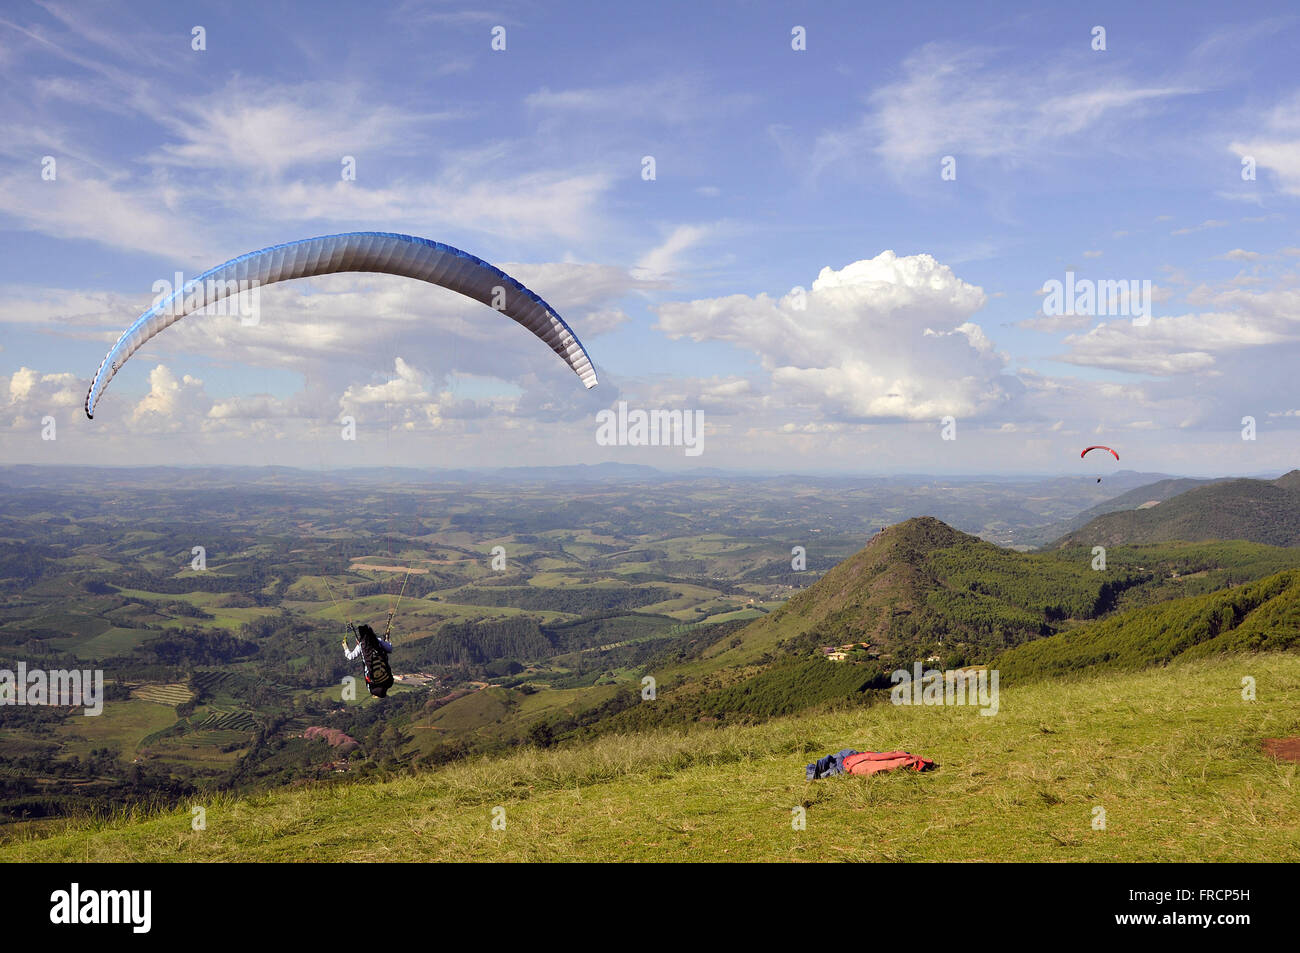 Practice gliding or paragliding from the north ramp next to the Morro do Cristo - Stock Image